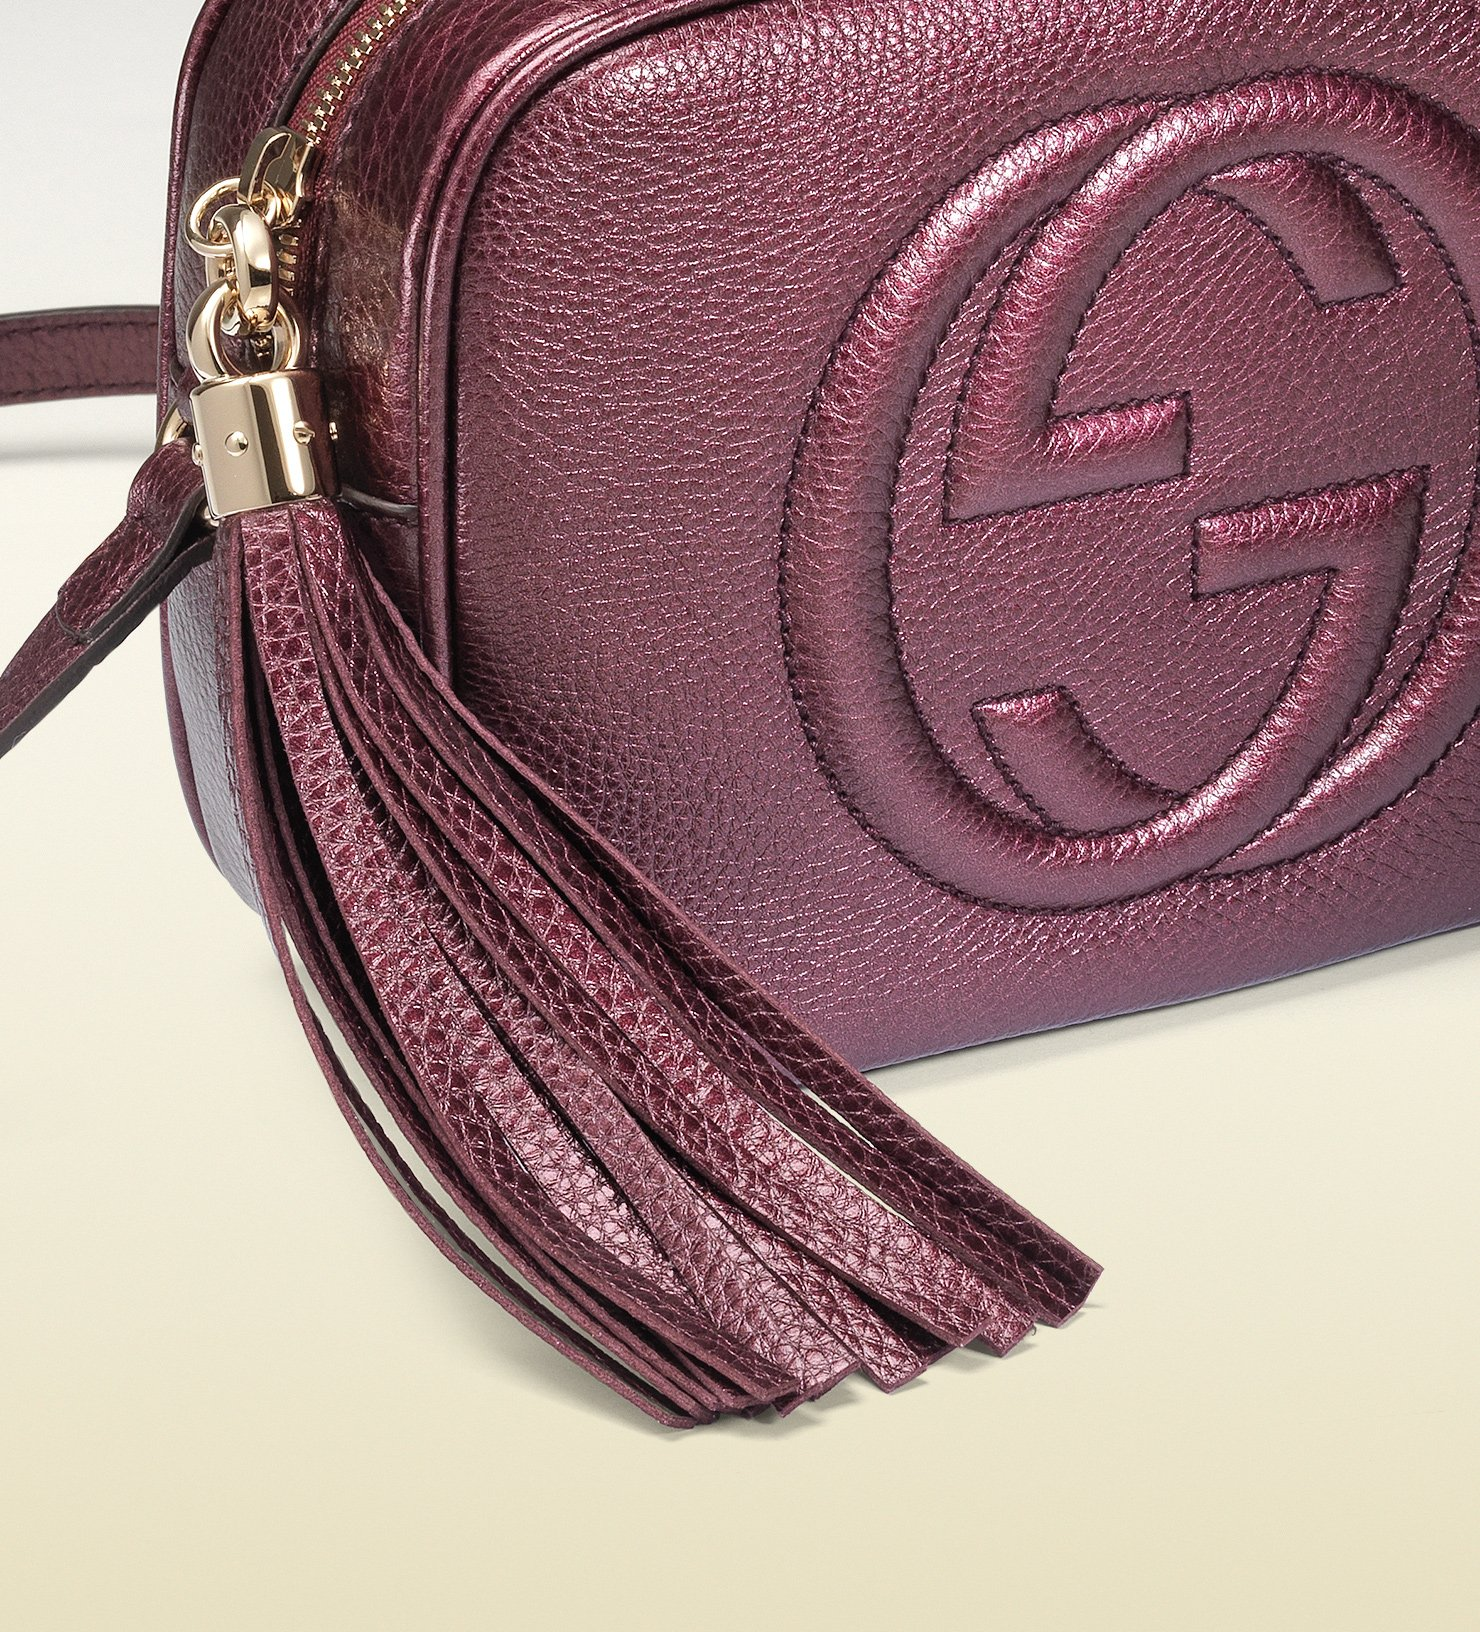 Lyst Gucci Soho Metallic Leather Disco Bag In Purple